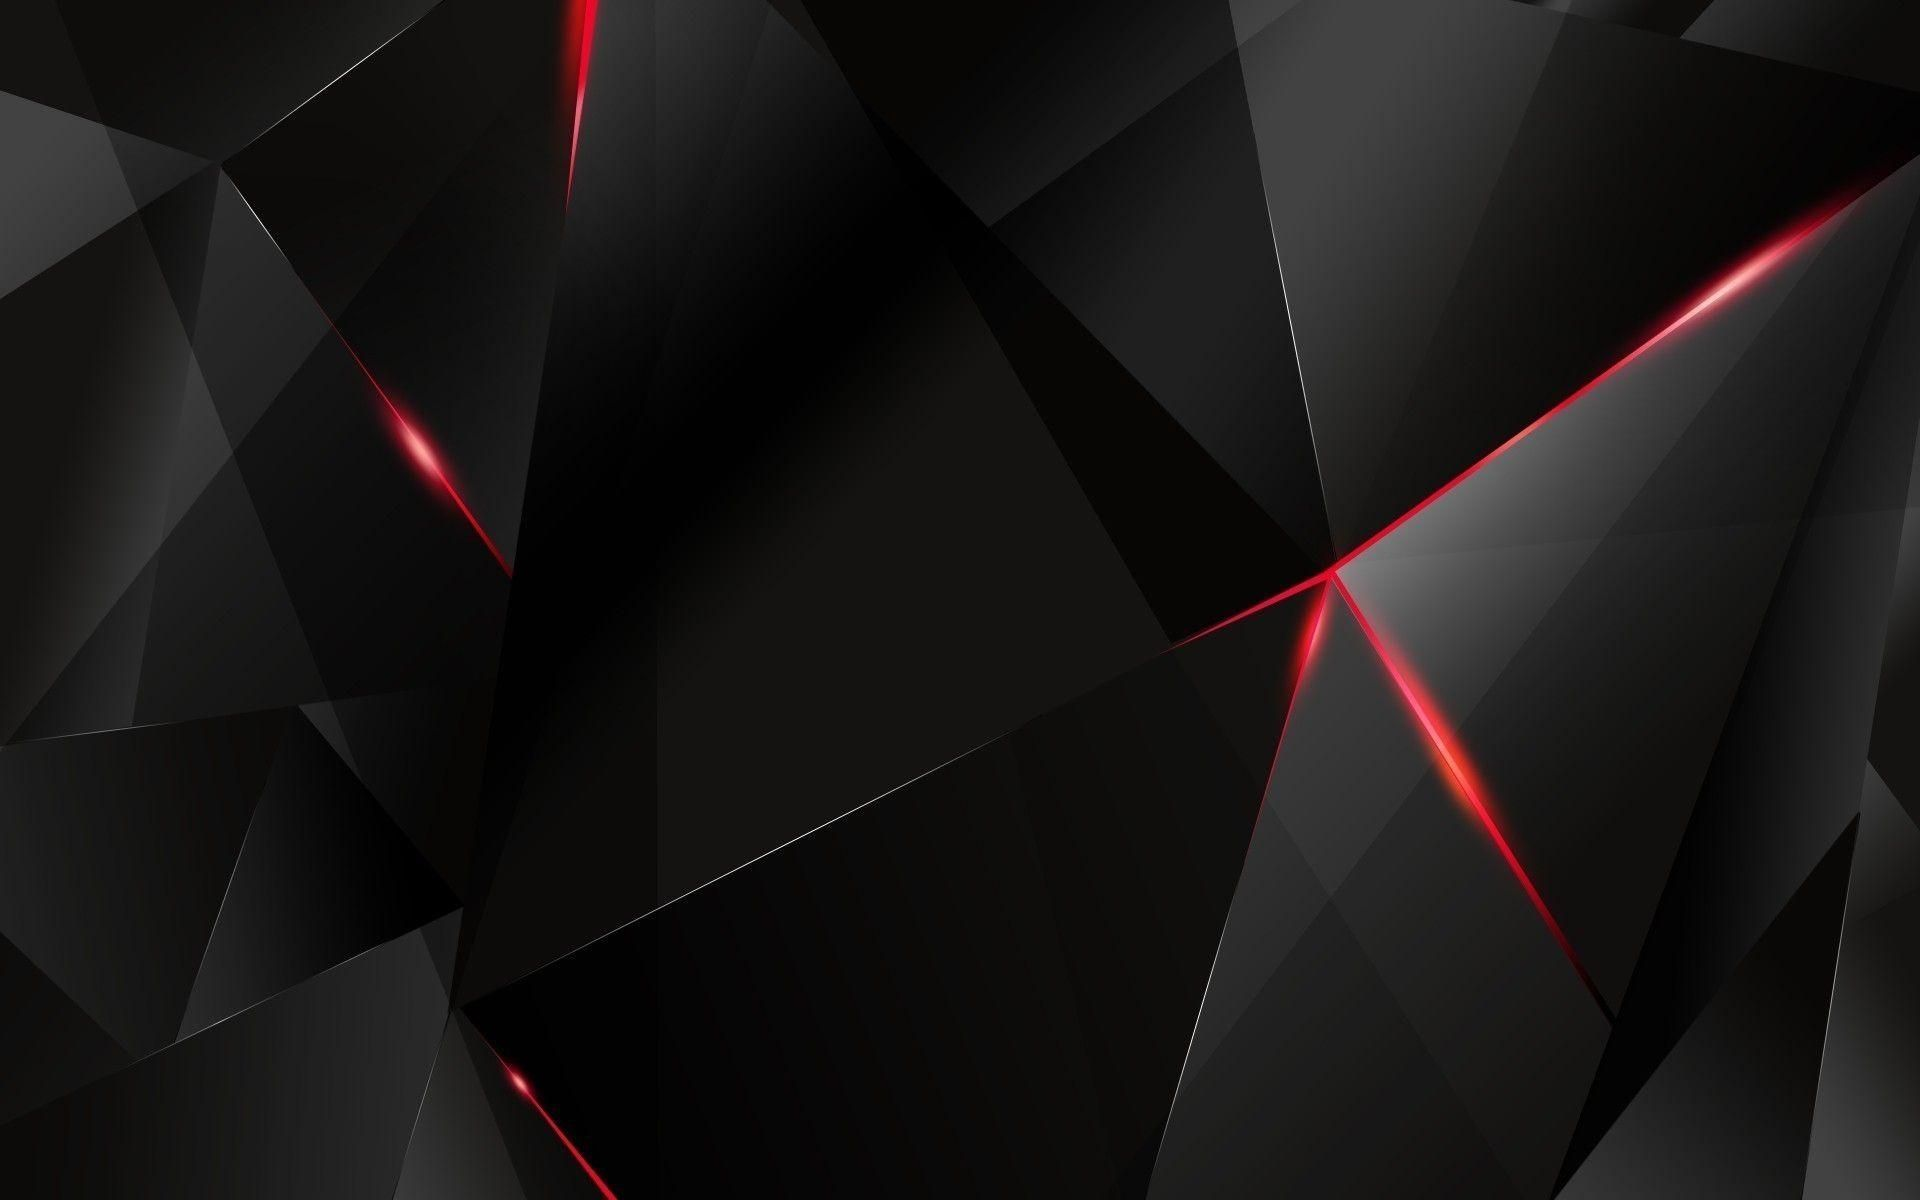 Black And Red Pc Wallpapers Top Free Black And Red Pc